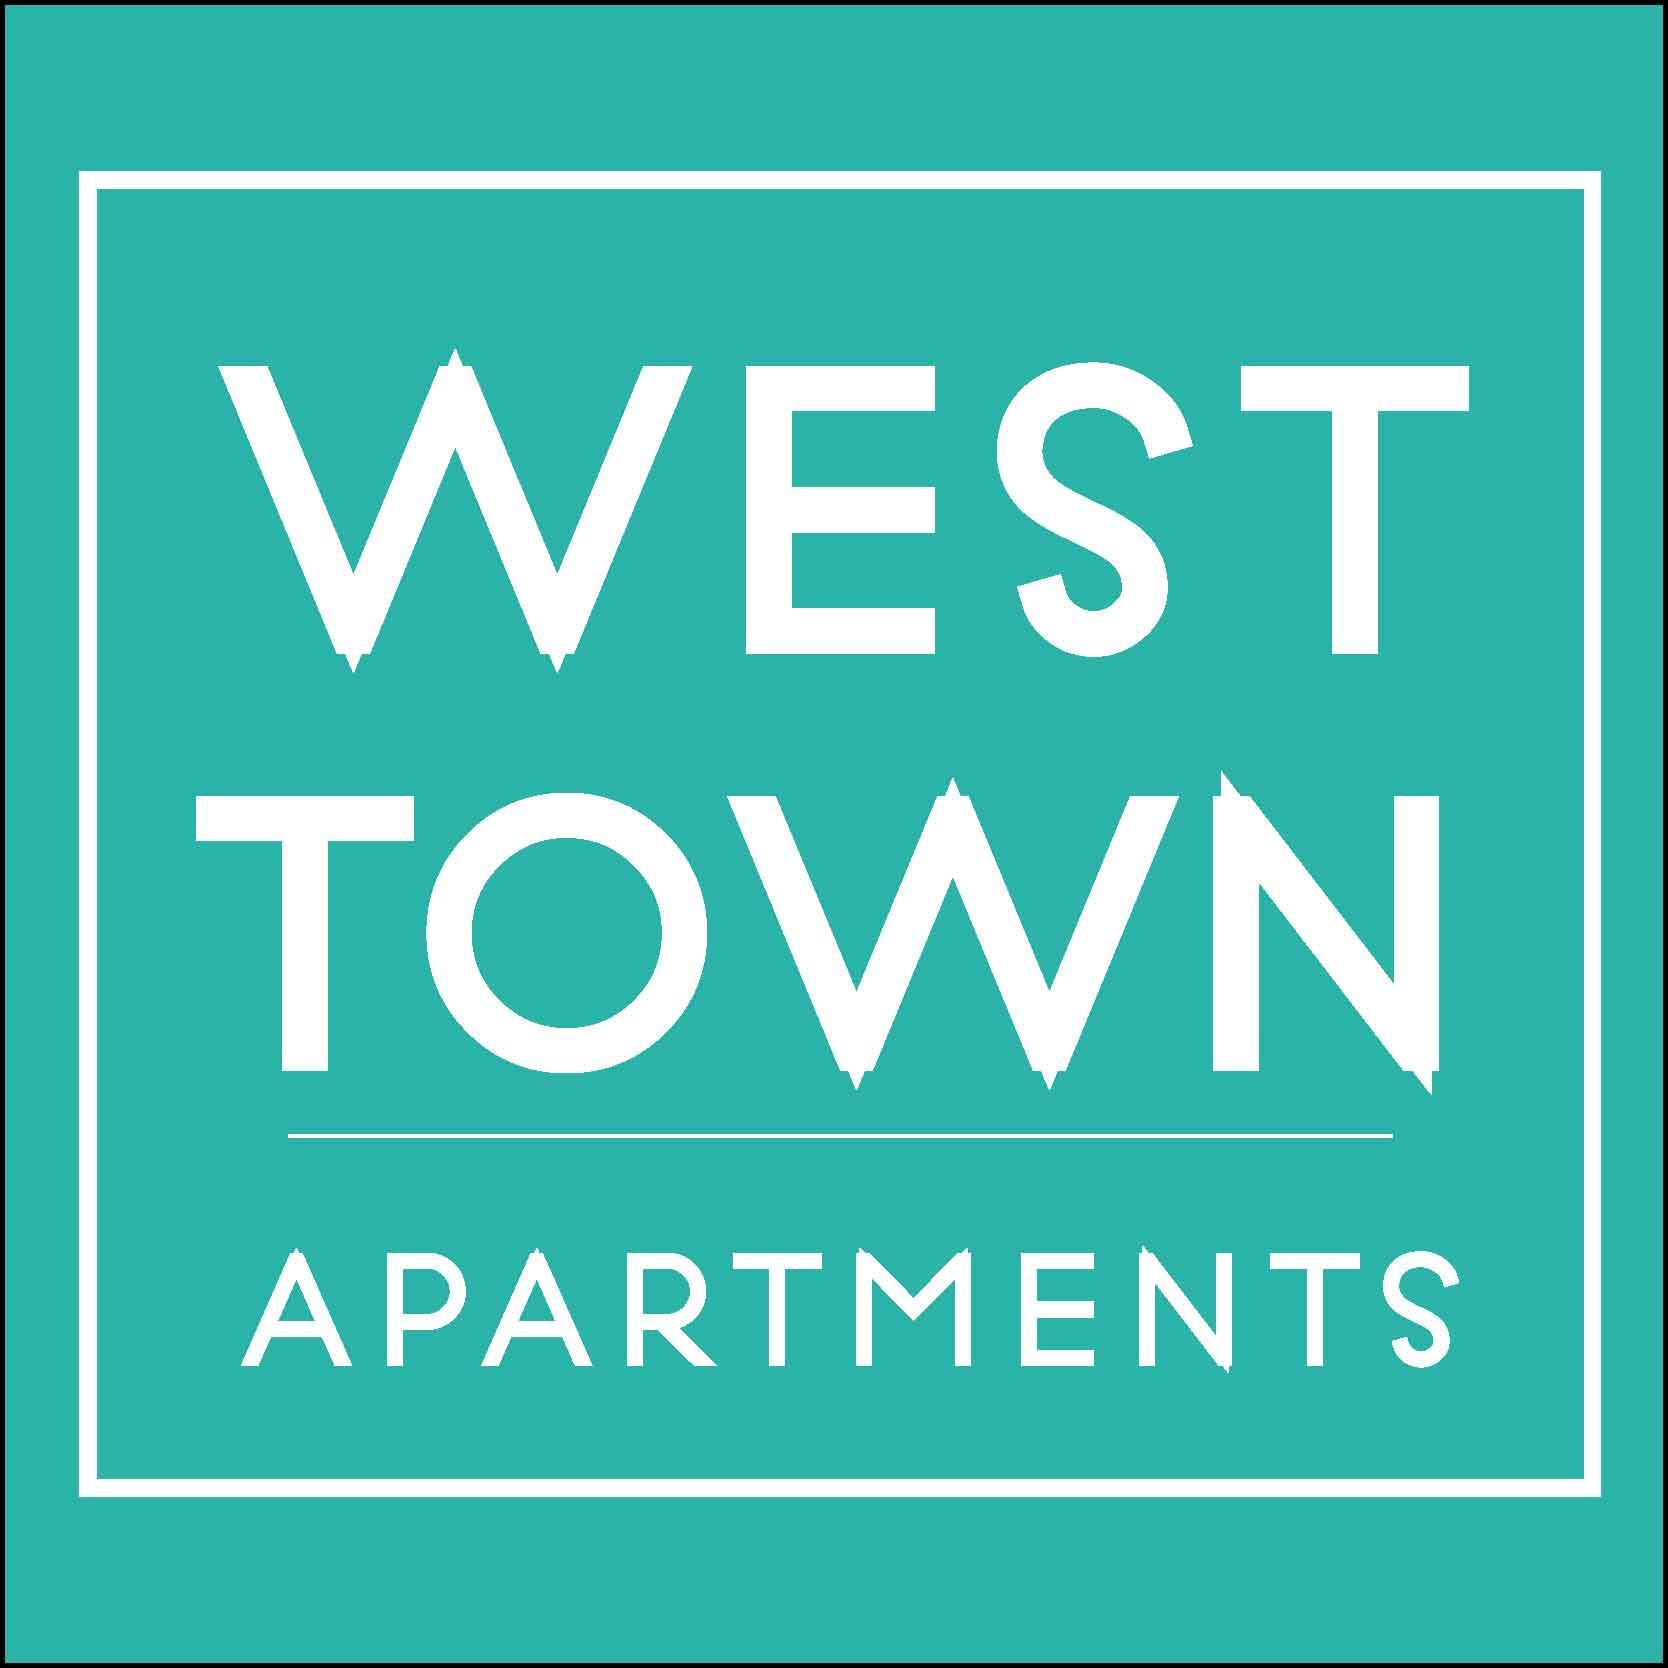 West Town Apartments